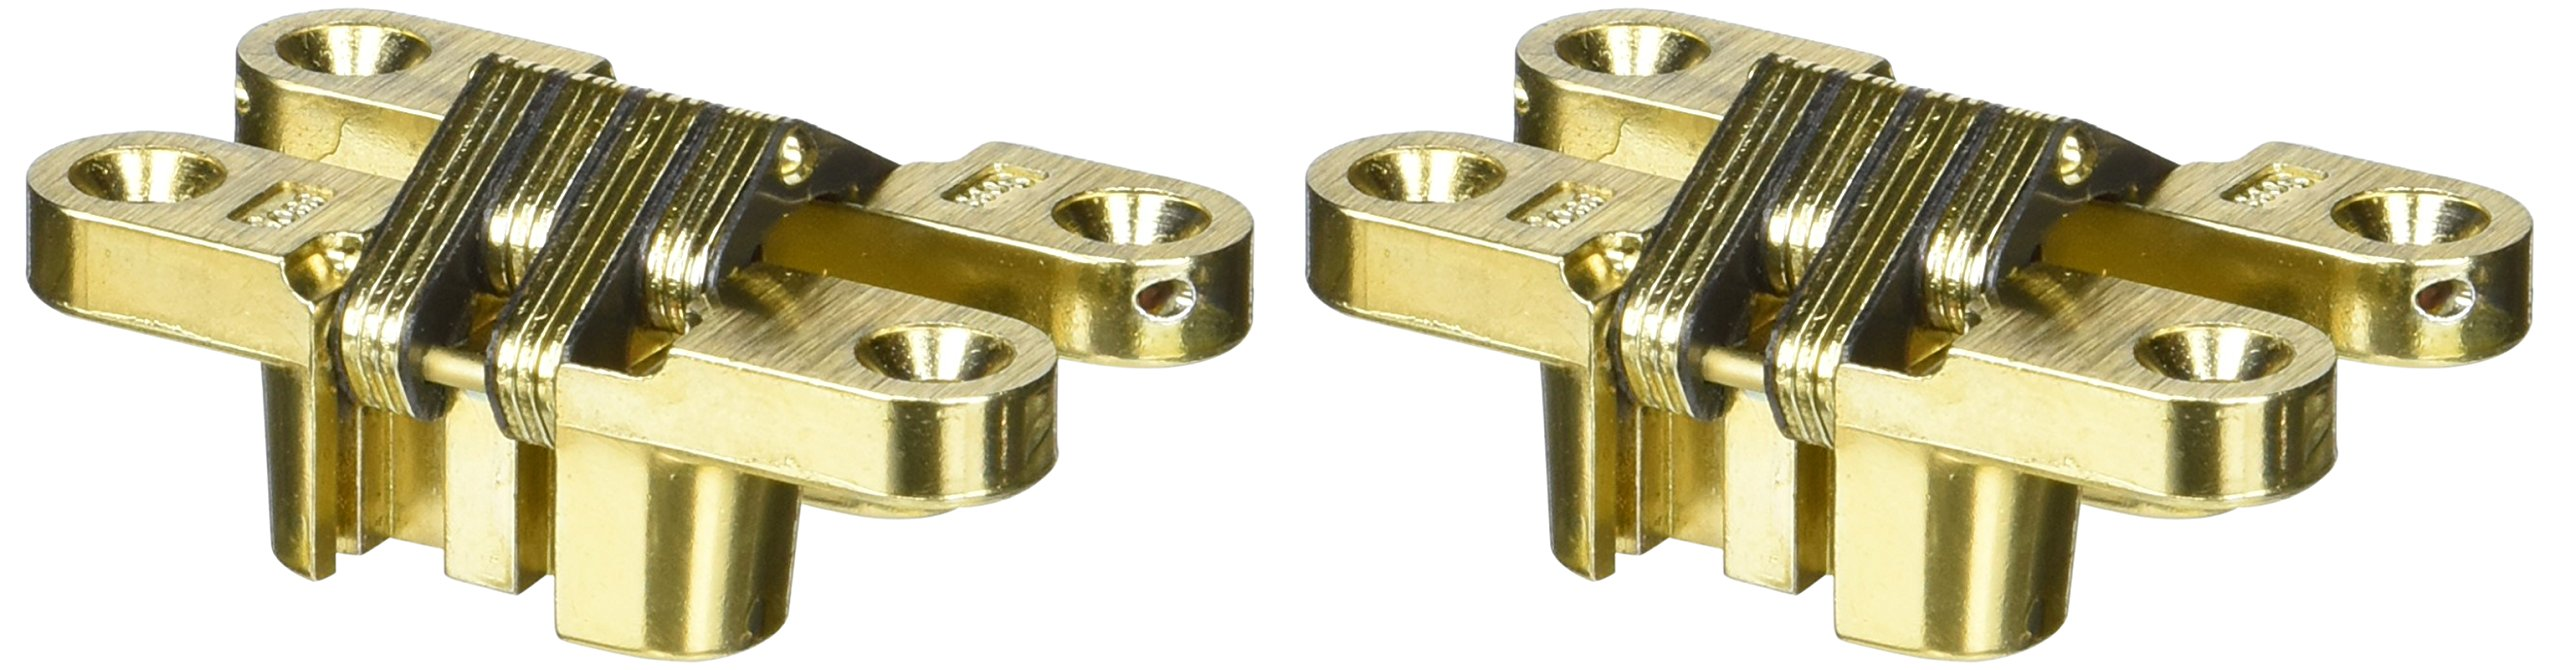 SOSS Mortise Mount Invisible Hinges with 4 Holes, Zinc, Satin Brass Finish, 2-3/8'' Leaf Height, 1/2'' Leaf Width, 23/32'' Leaf Thickness, 7 x 1-1/4'' Screw Size (1 Pair)